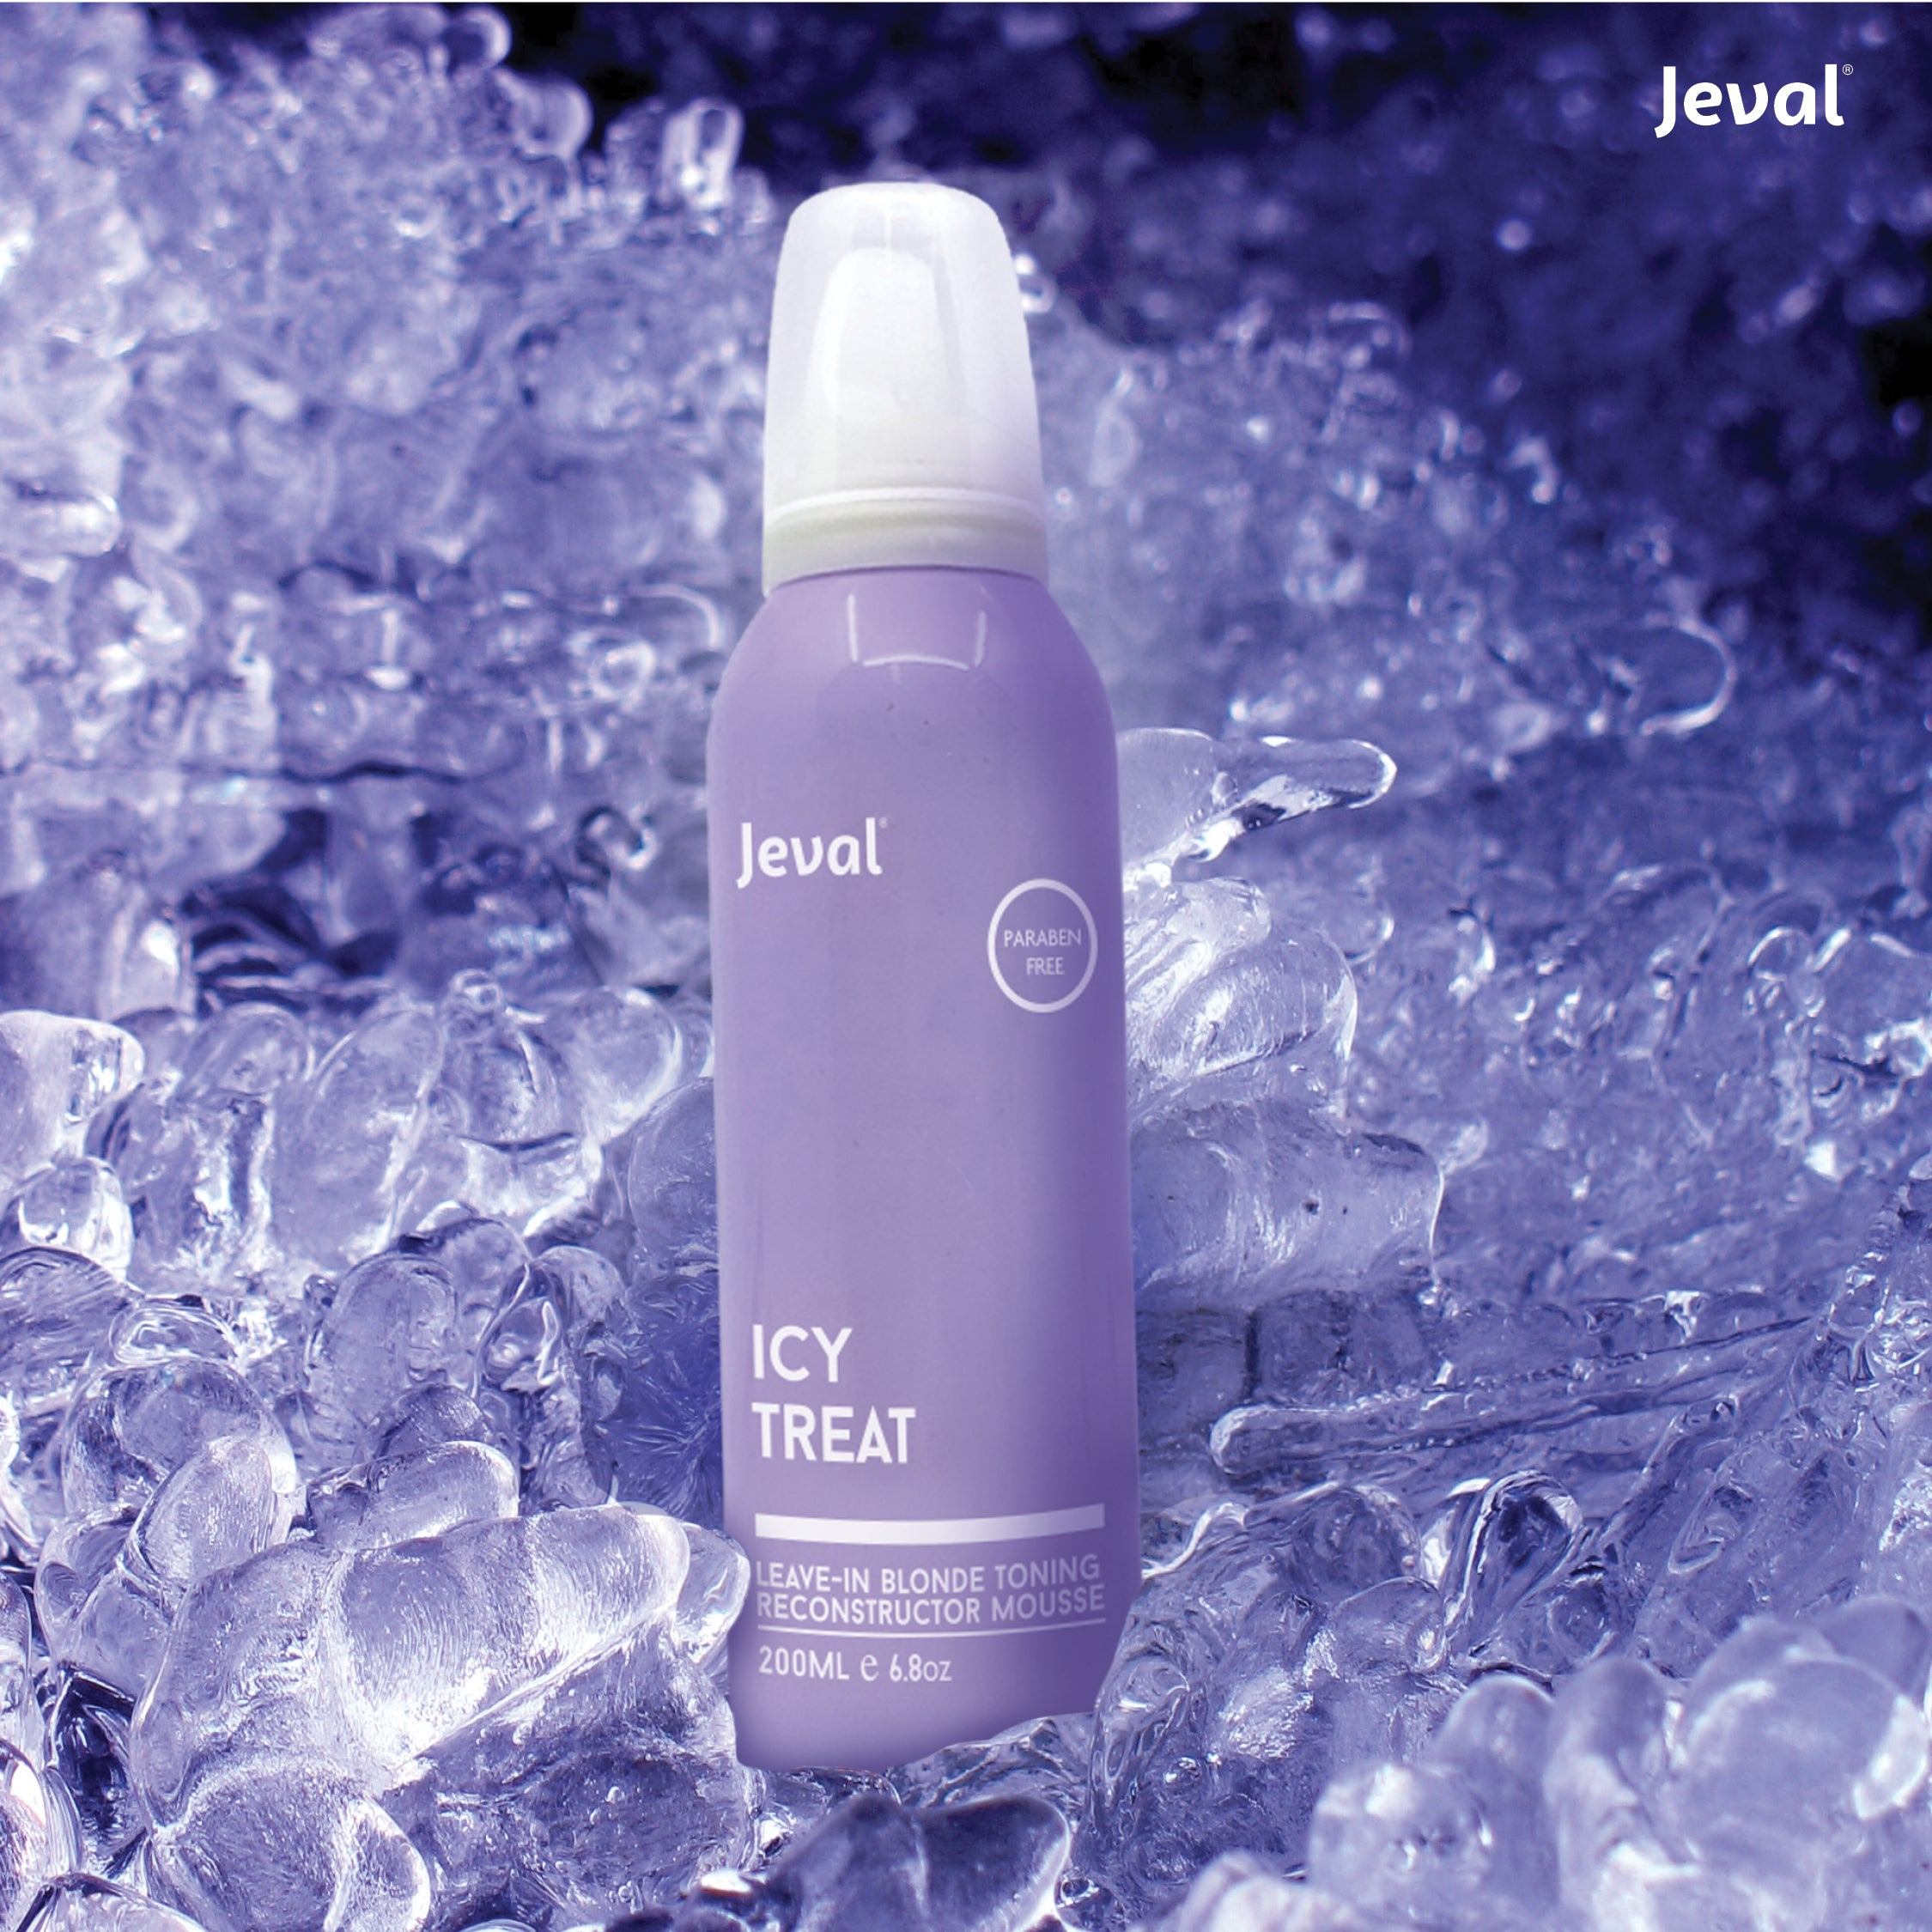 Jeval Icy Treat Reconstructor Mousse